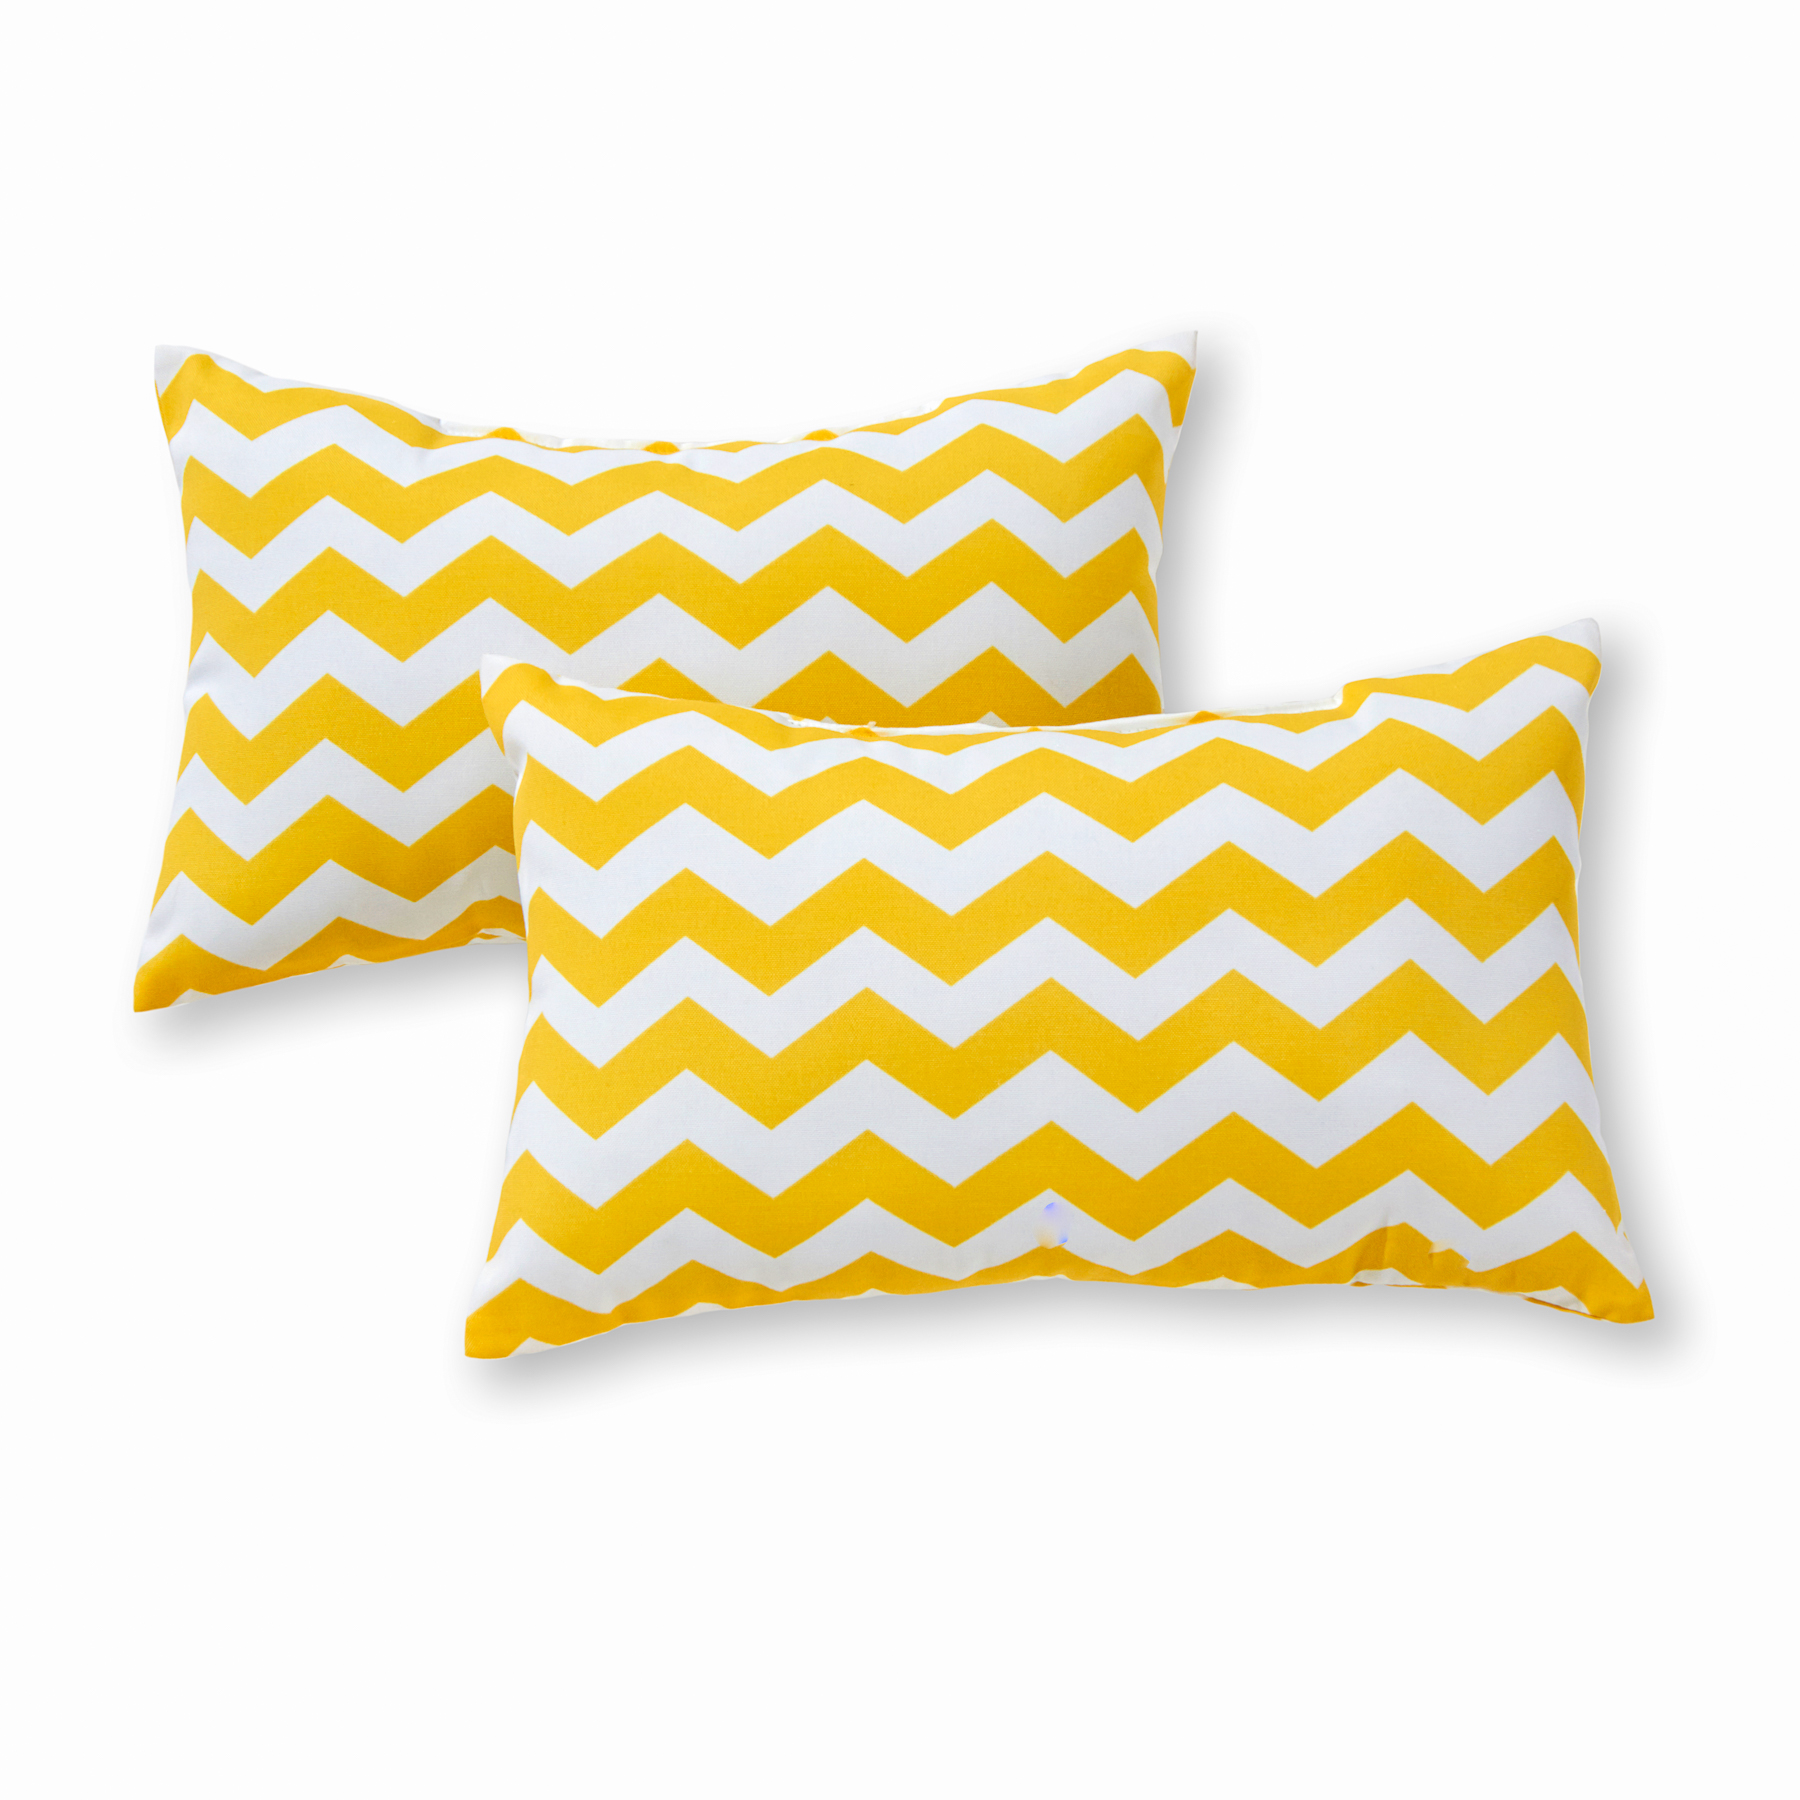 Greendale Home Fashions Yellow Zig Zag Rectangle Outdoor Accent Pillow, Set of 2